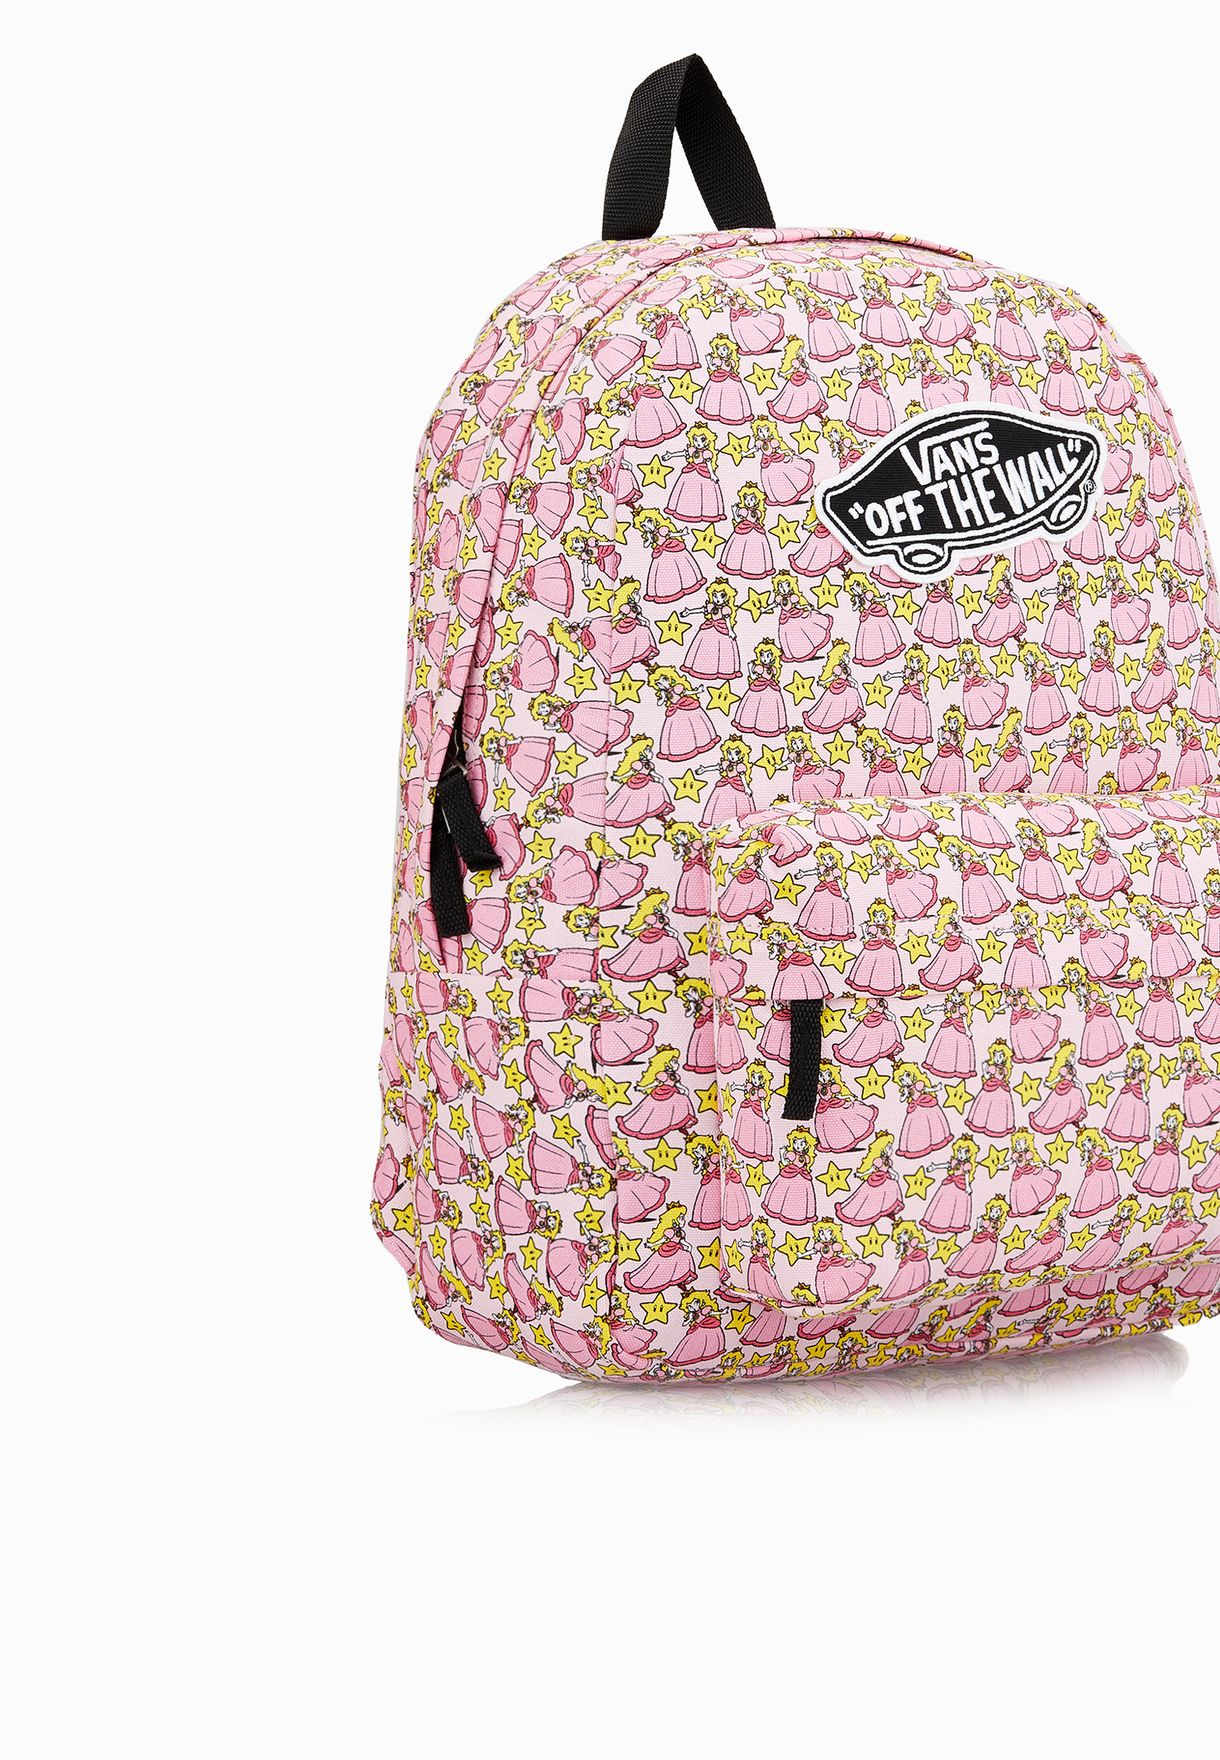 e2771e5859e3 Shop Vans prints Princess Peach Nintendo Backpack VYYSKKA for ...